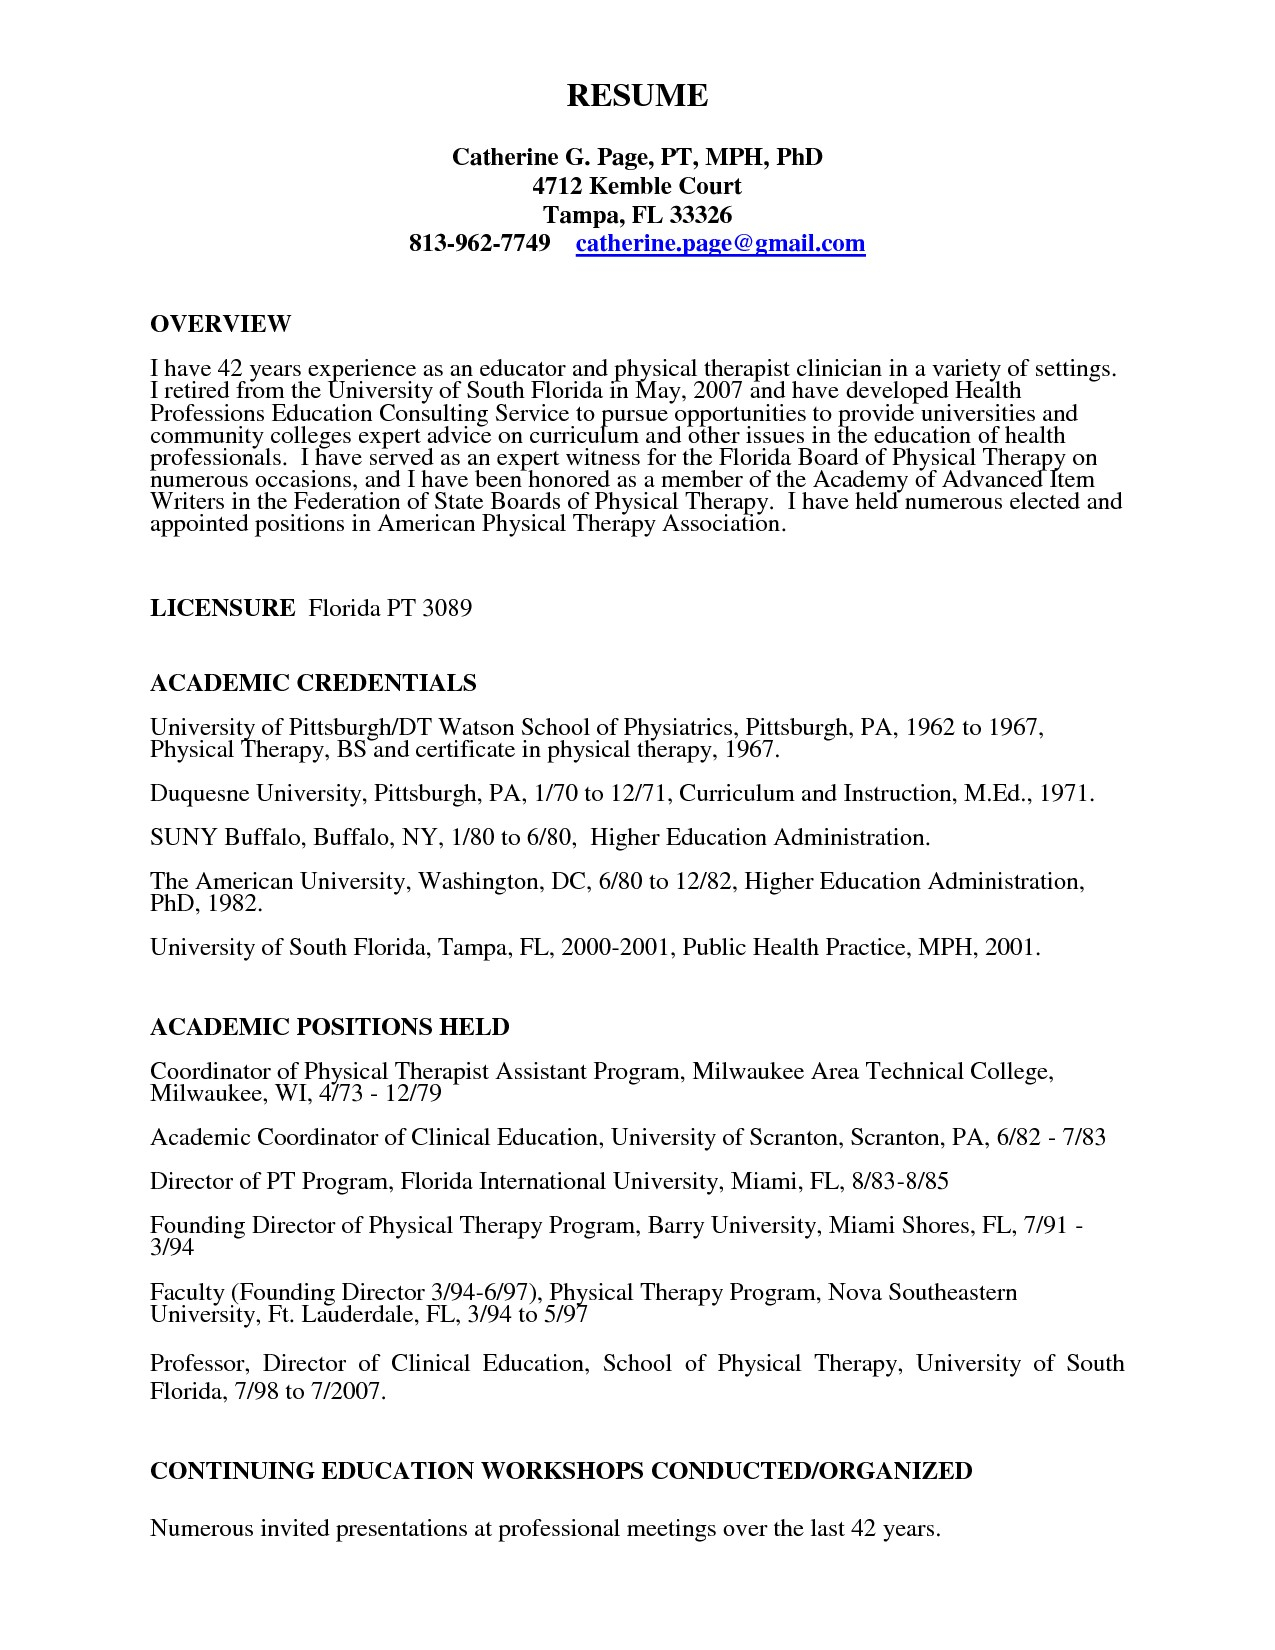 Physical therapist Aide Resume Samples - Physical therapy Resume Examples Awesome Download Sample Resume